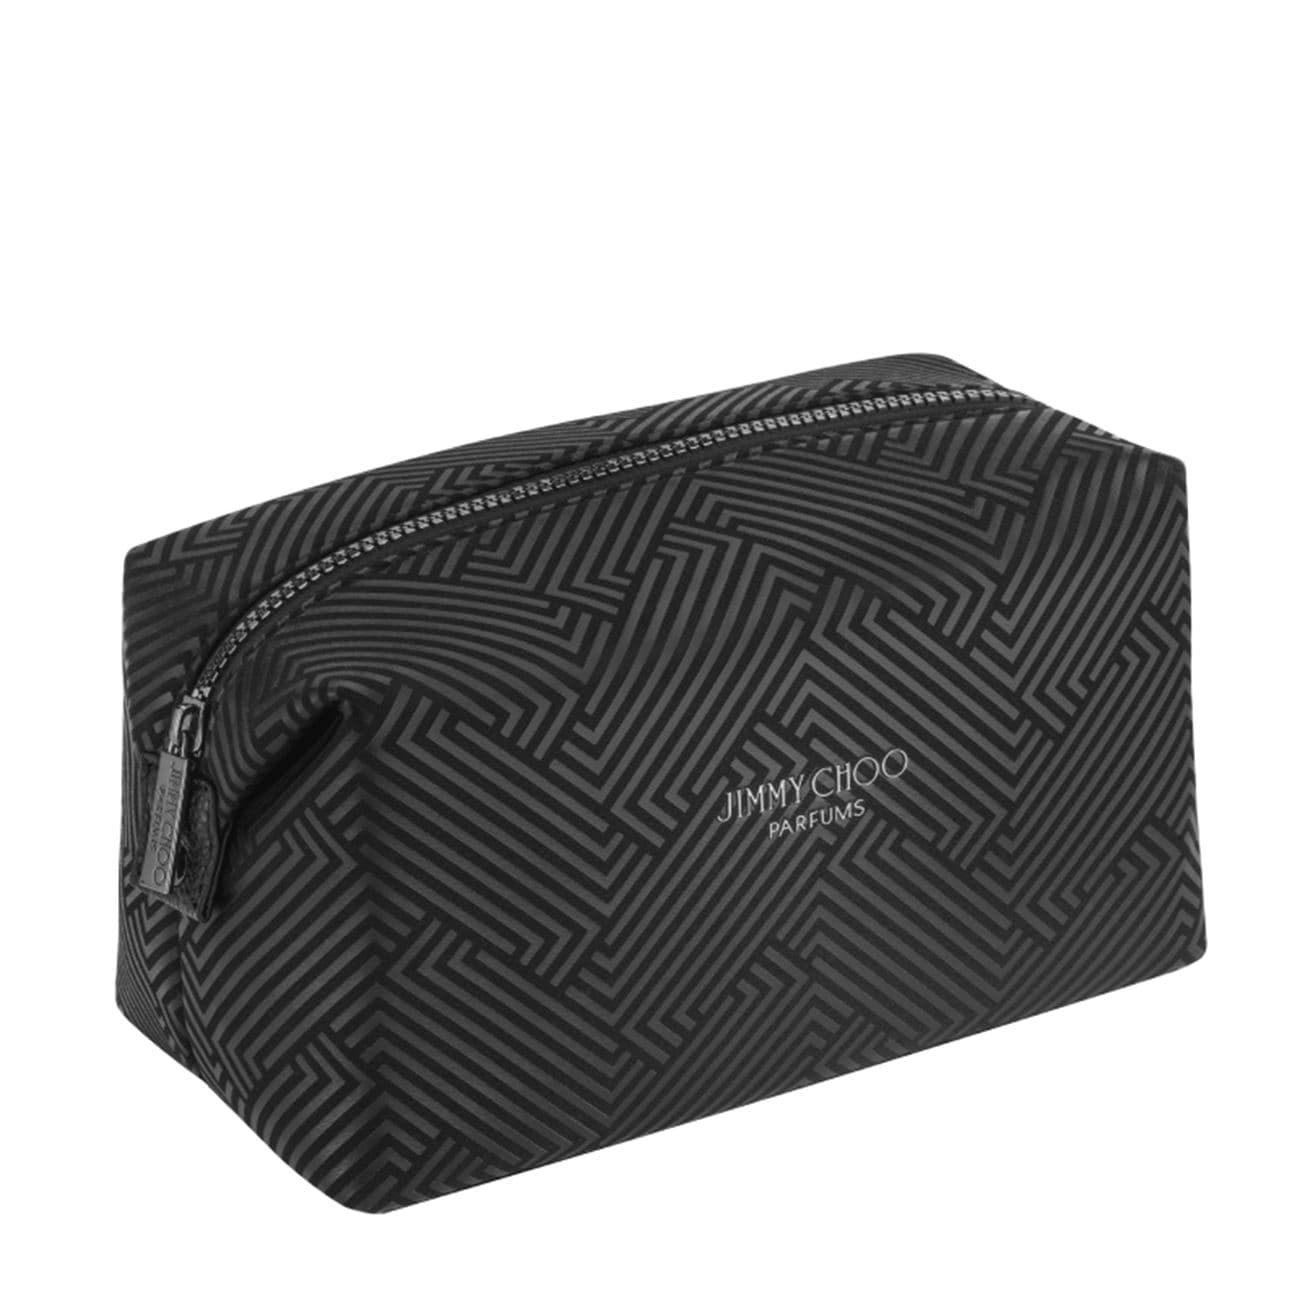 Jimmy Choo Urban Hero Toiletry Pouch - Free Gift